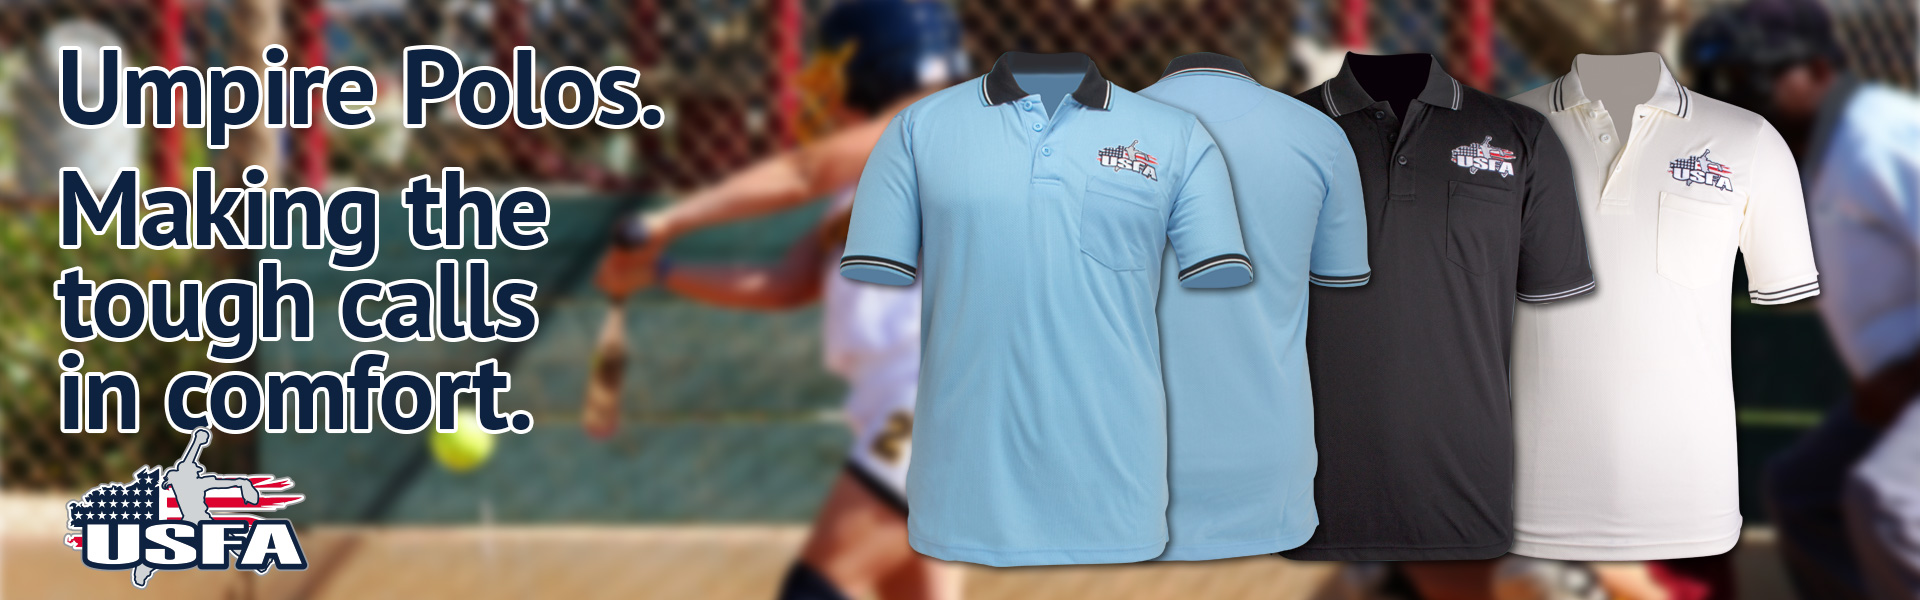 USFA Official Umpire Polo Shirts at Success Promotions